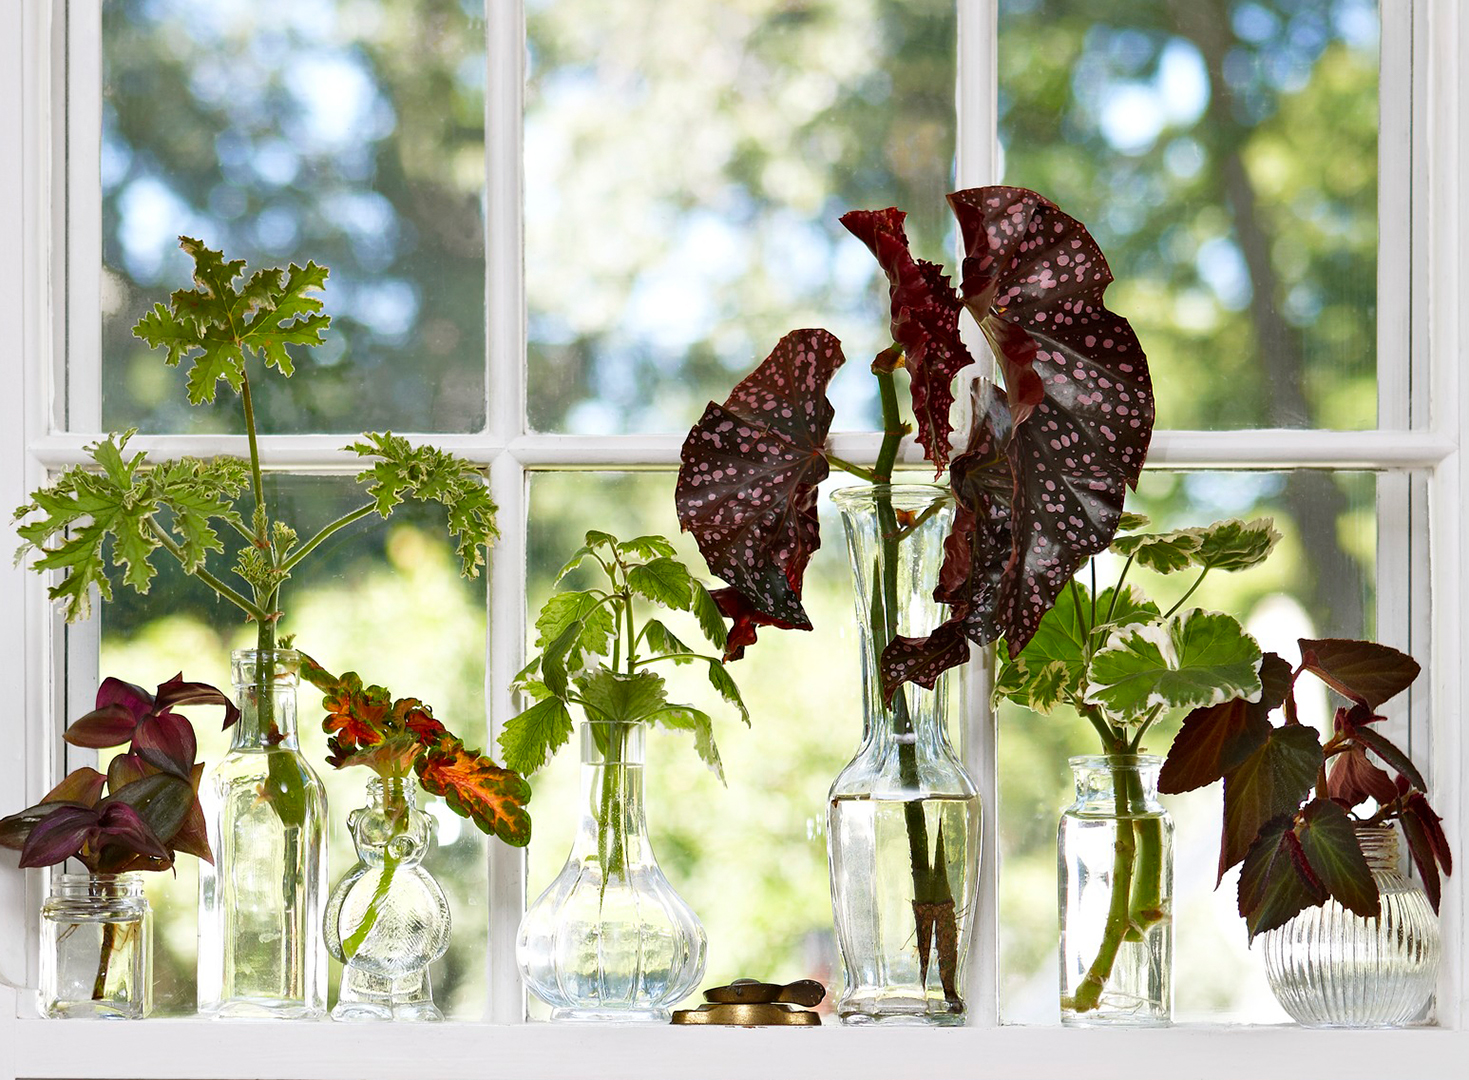 How to Grow Plants From Stem Cuttings